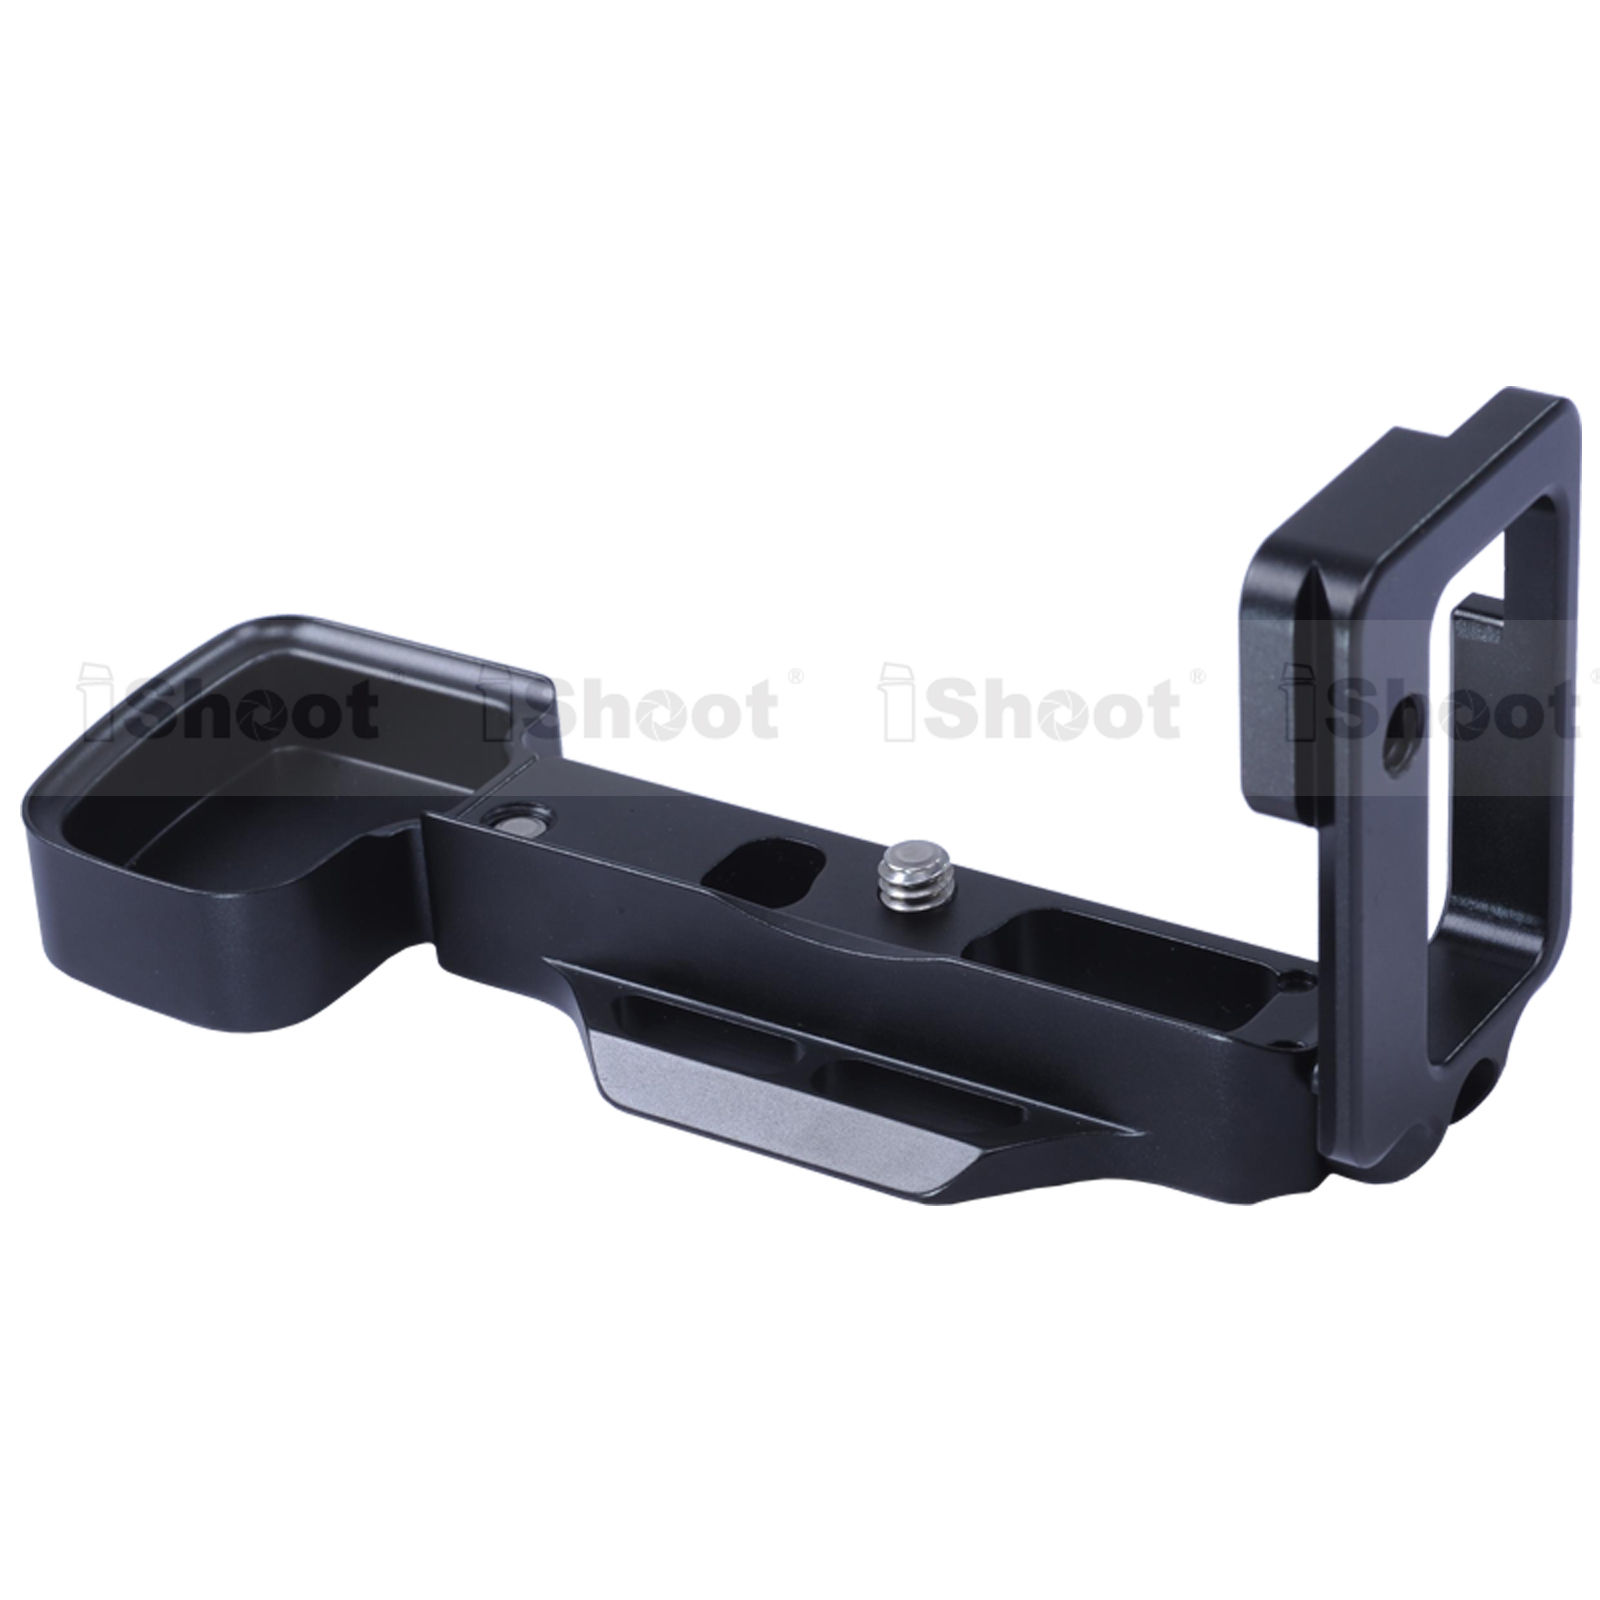 L-shaped Vertical Quick Release Plate Camera Holder Bracket Grip for Sony a6500 a6300 a6000 Used to Arca fit Tripod Ball Head